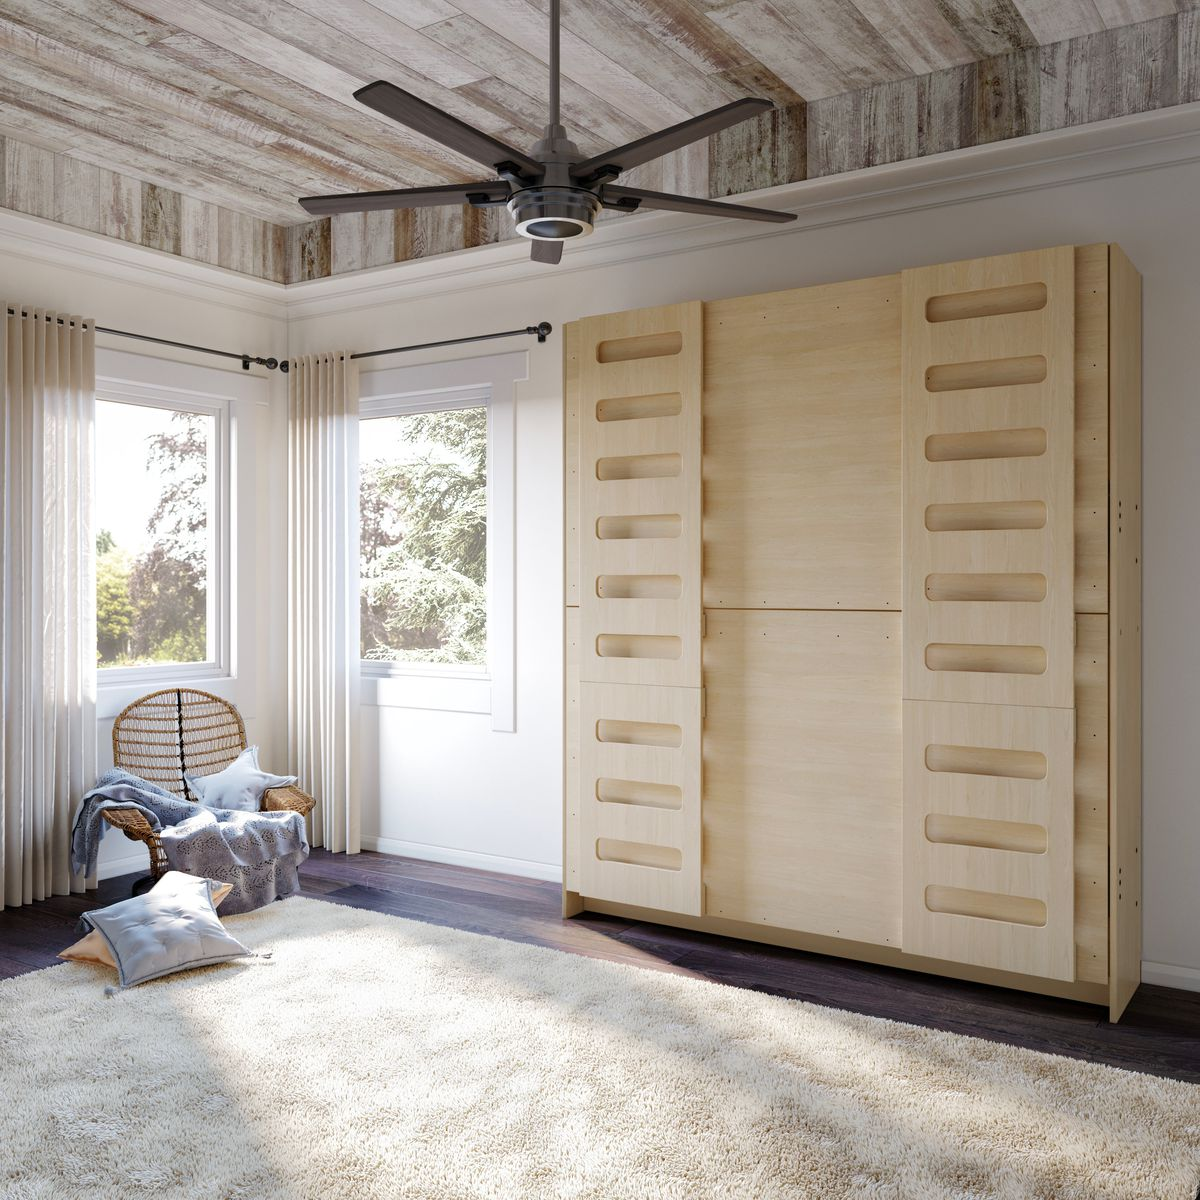 Closed murphy bed.